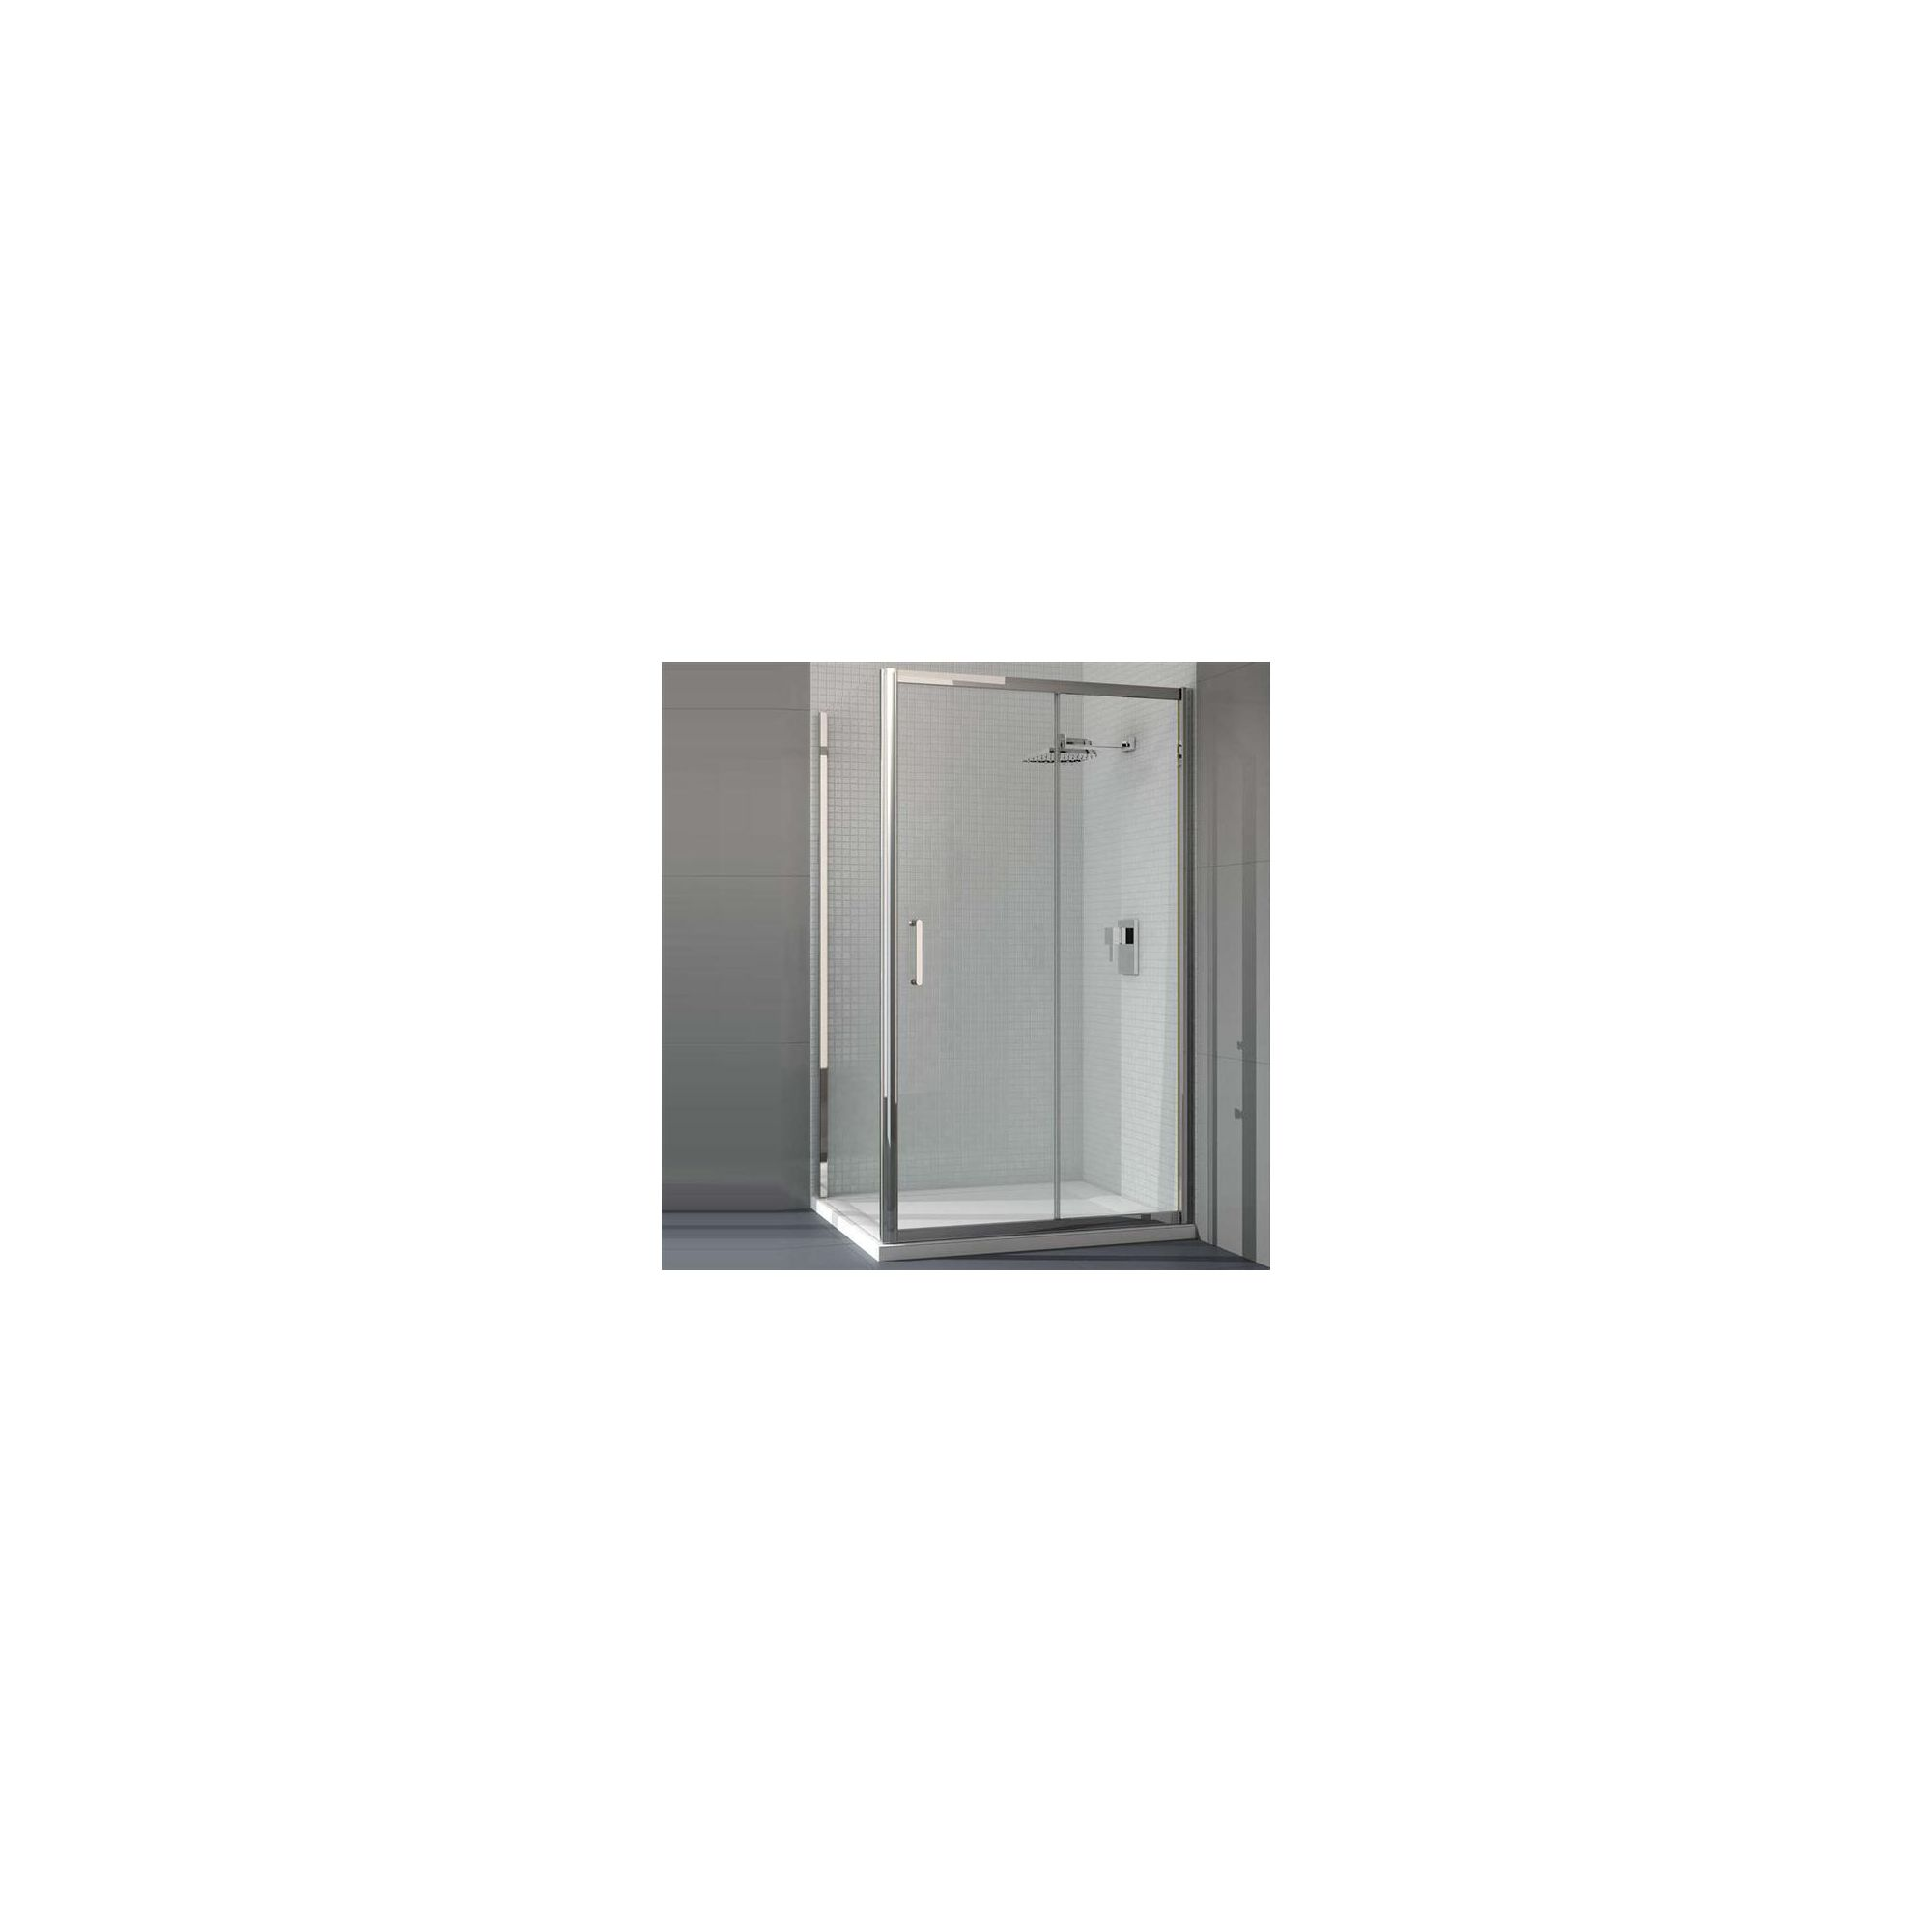 Merlyn Vivid Six Sliding Door Shower Enclosure, 1700mm x 800mm, Low Profile Tray, 6mm Glass at Tesco Direct